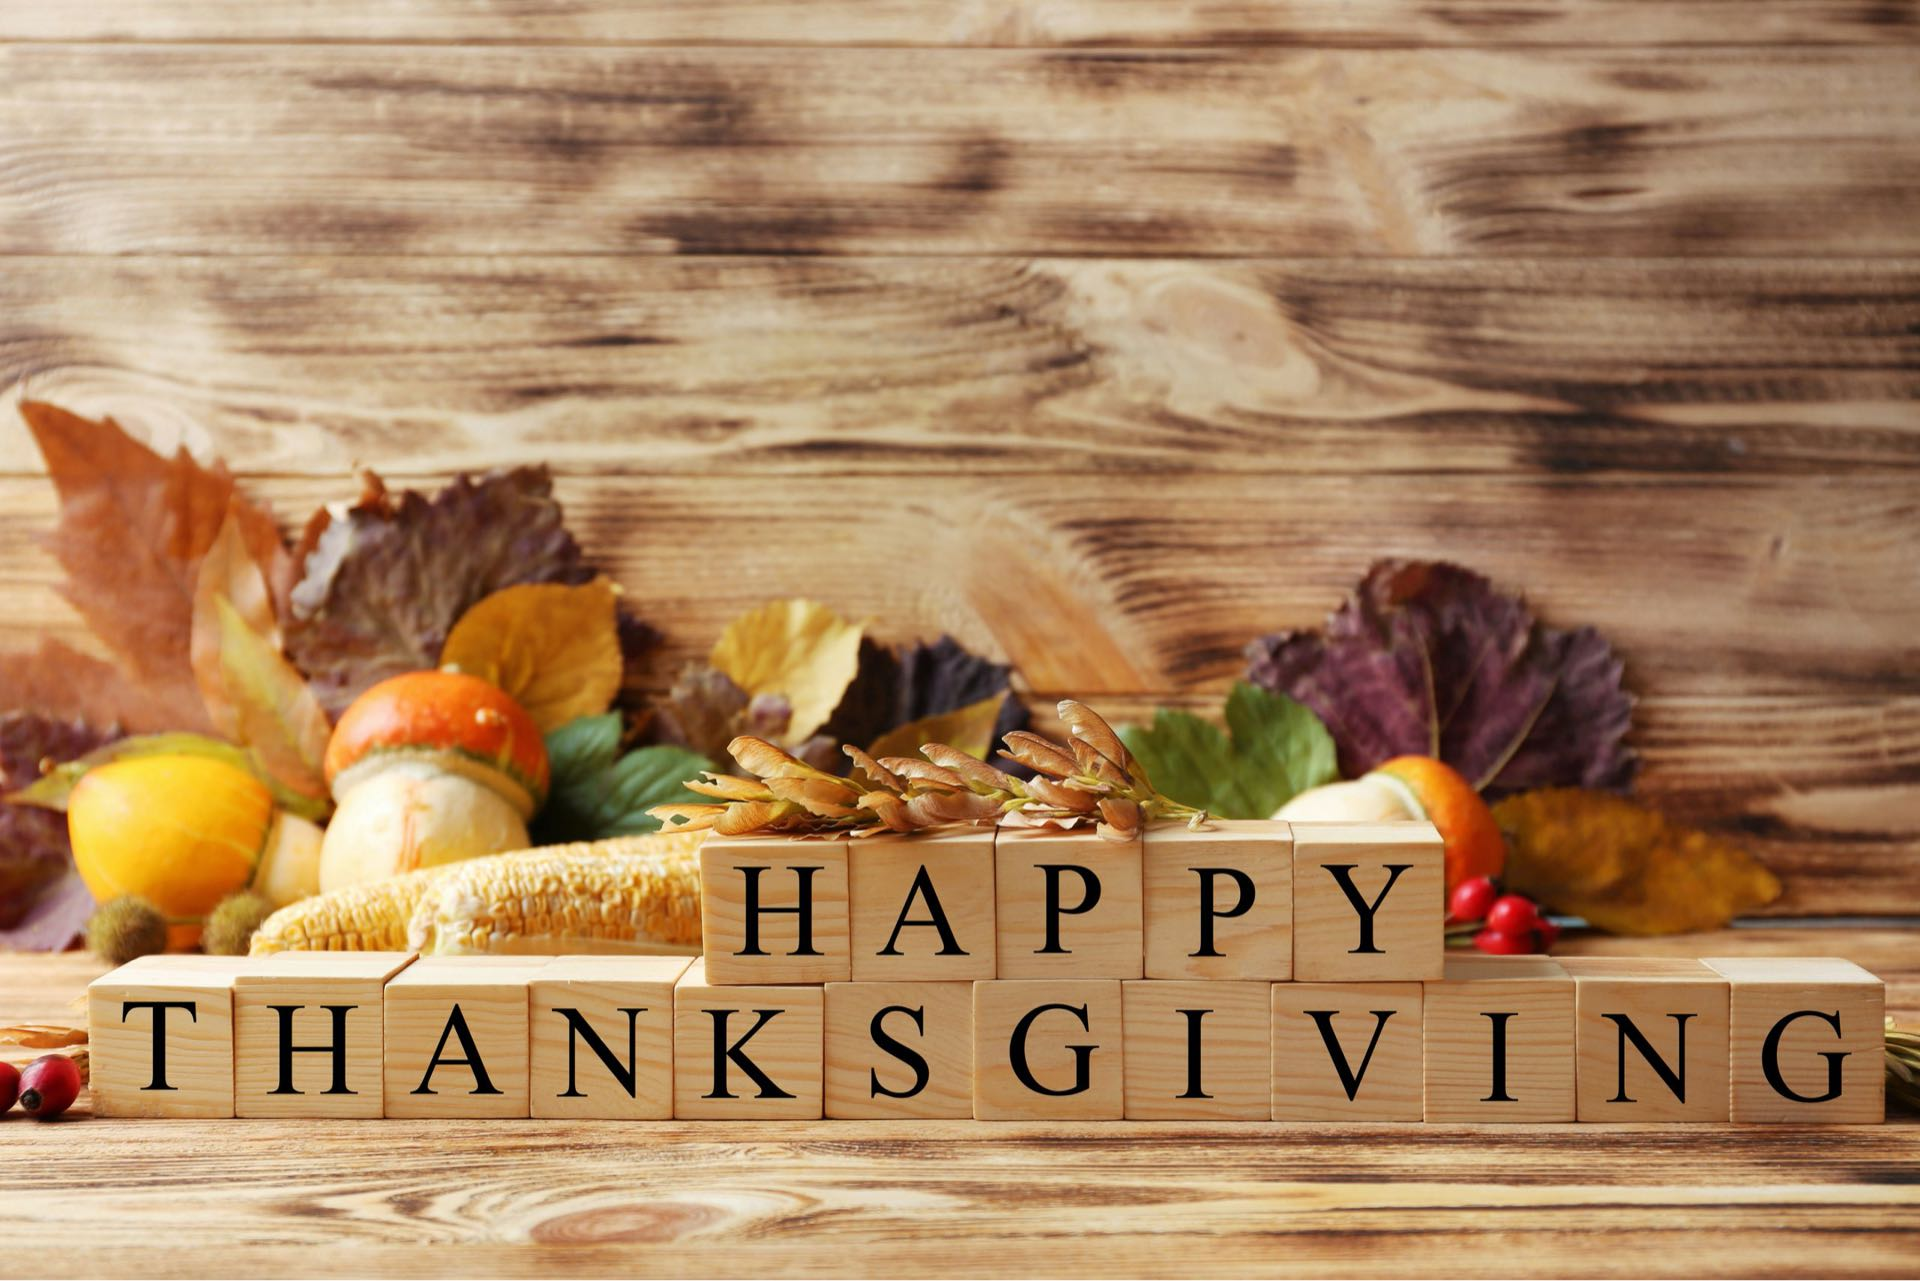 Happy Thanksgiving: One Greenway Gives Thanks